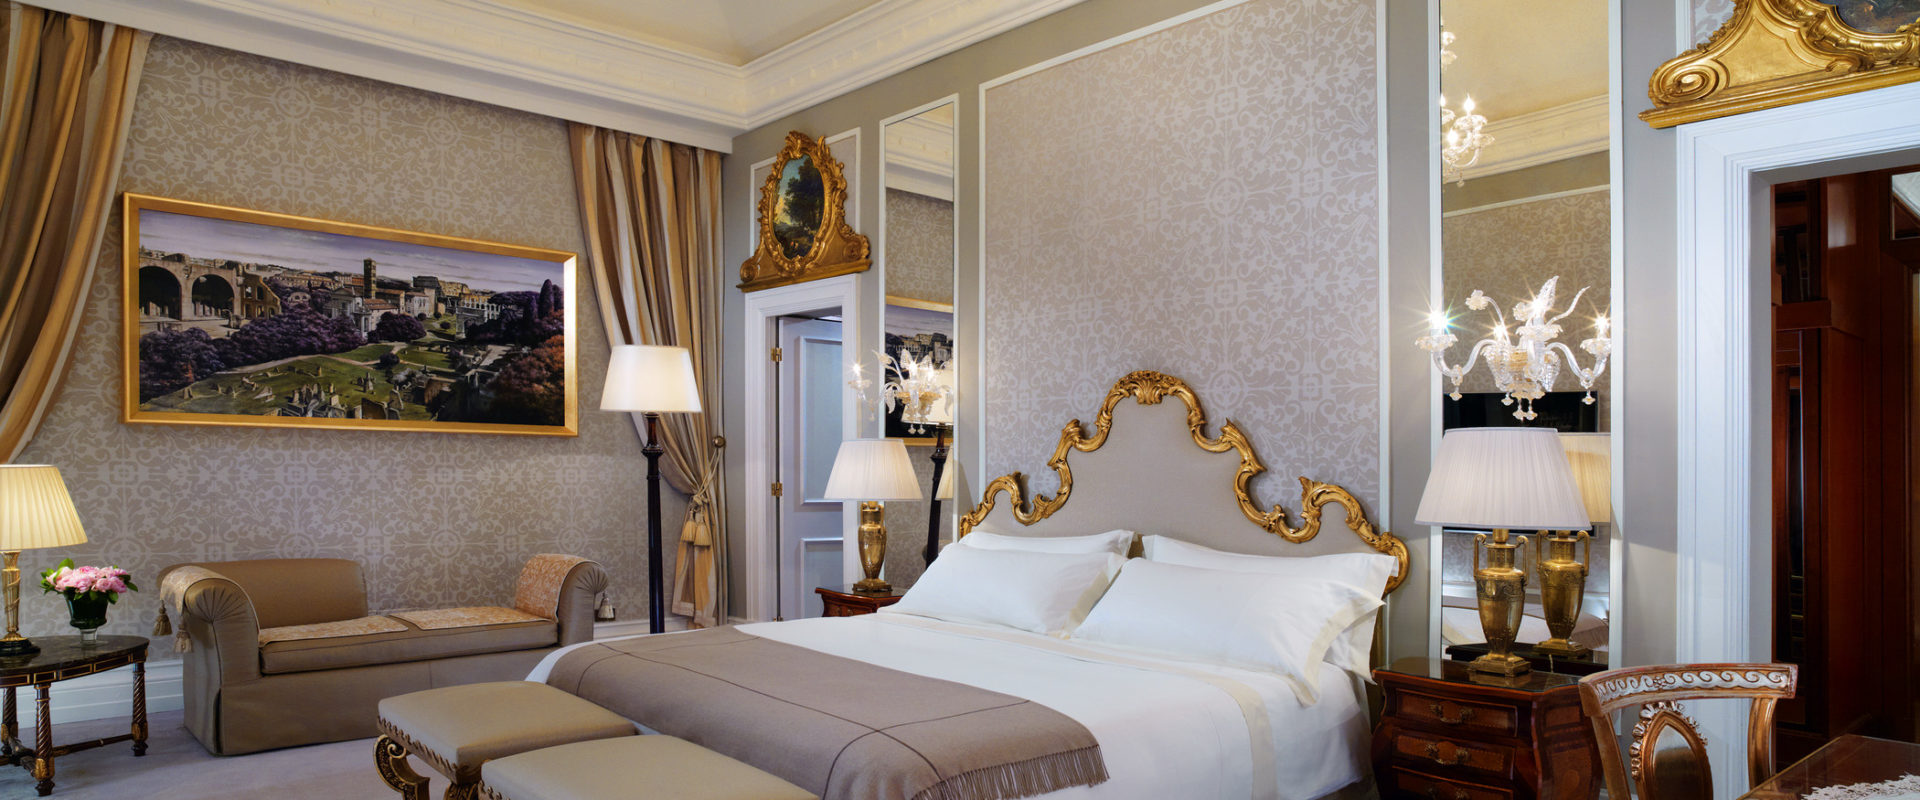 Bedroom of Royal Suite at The St. Regis Rome